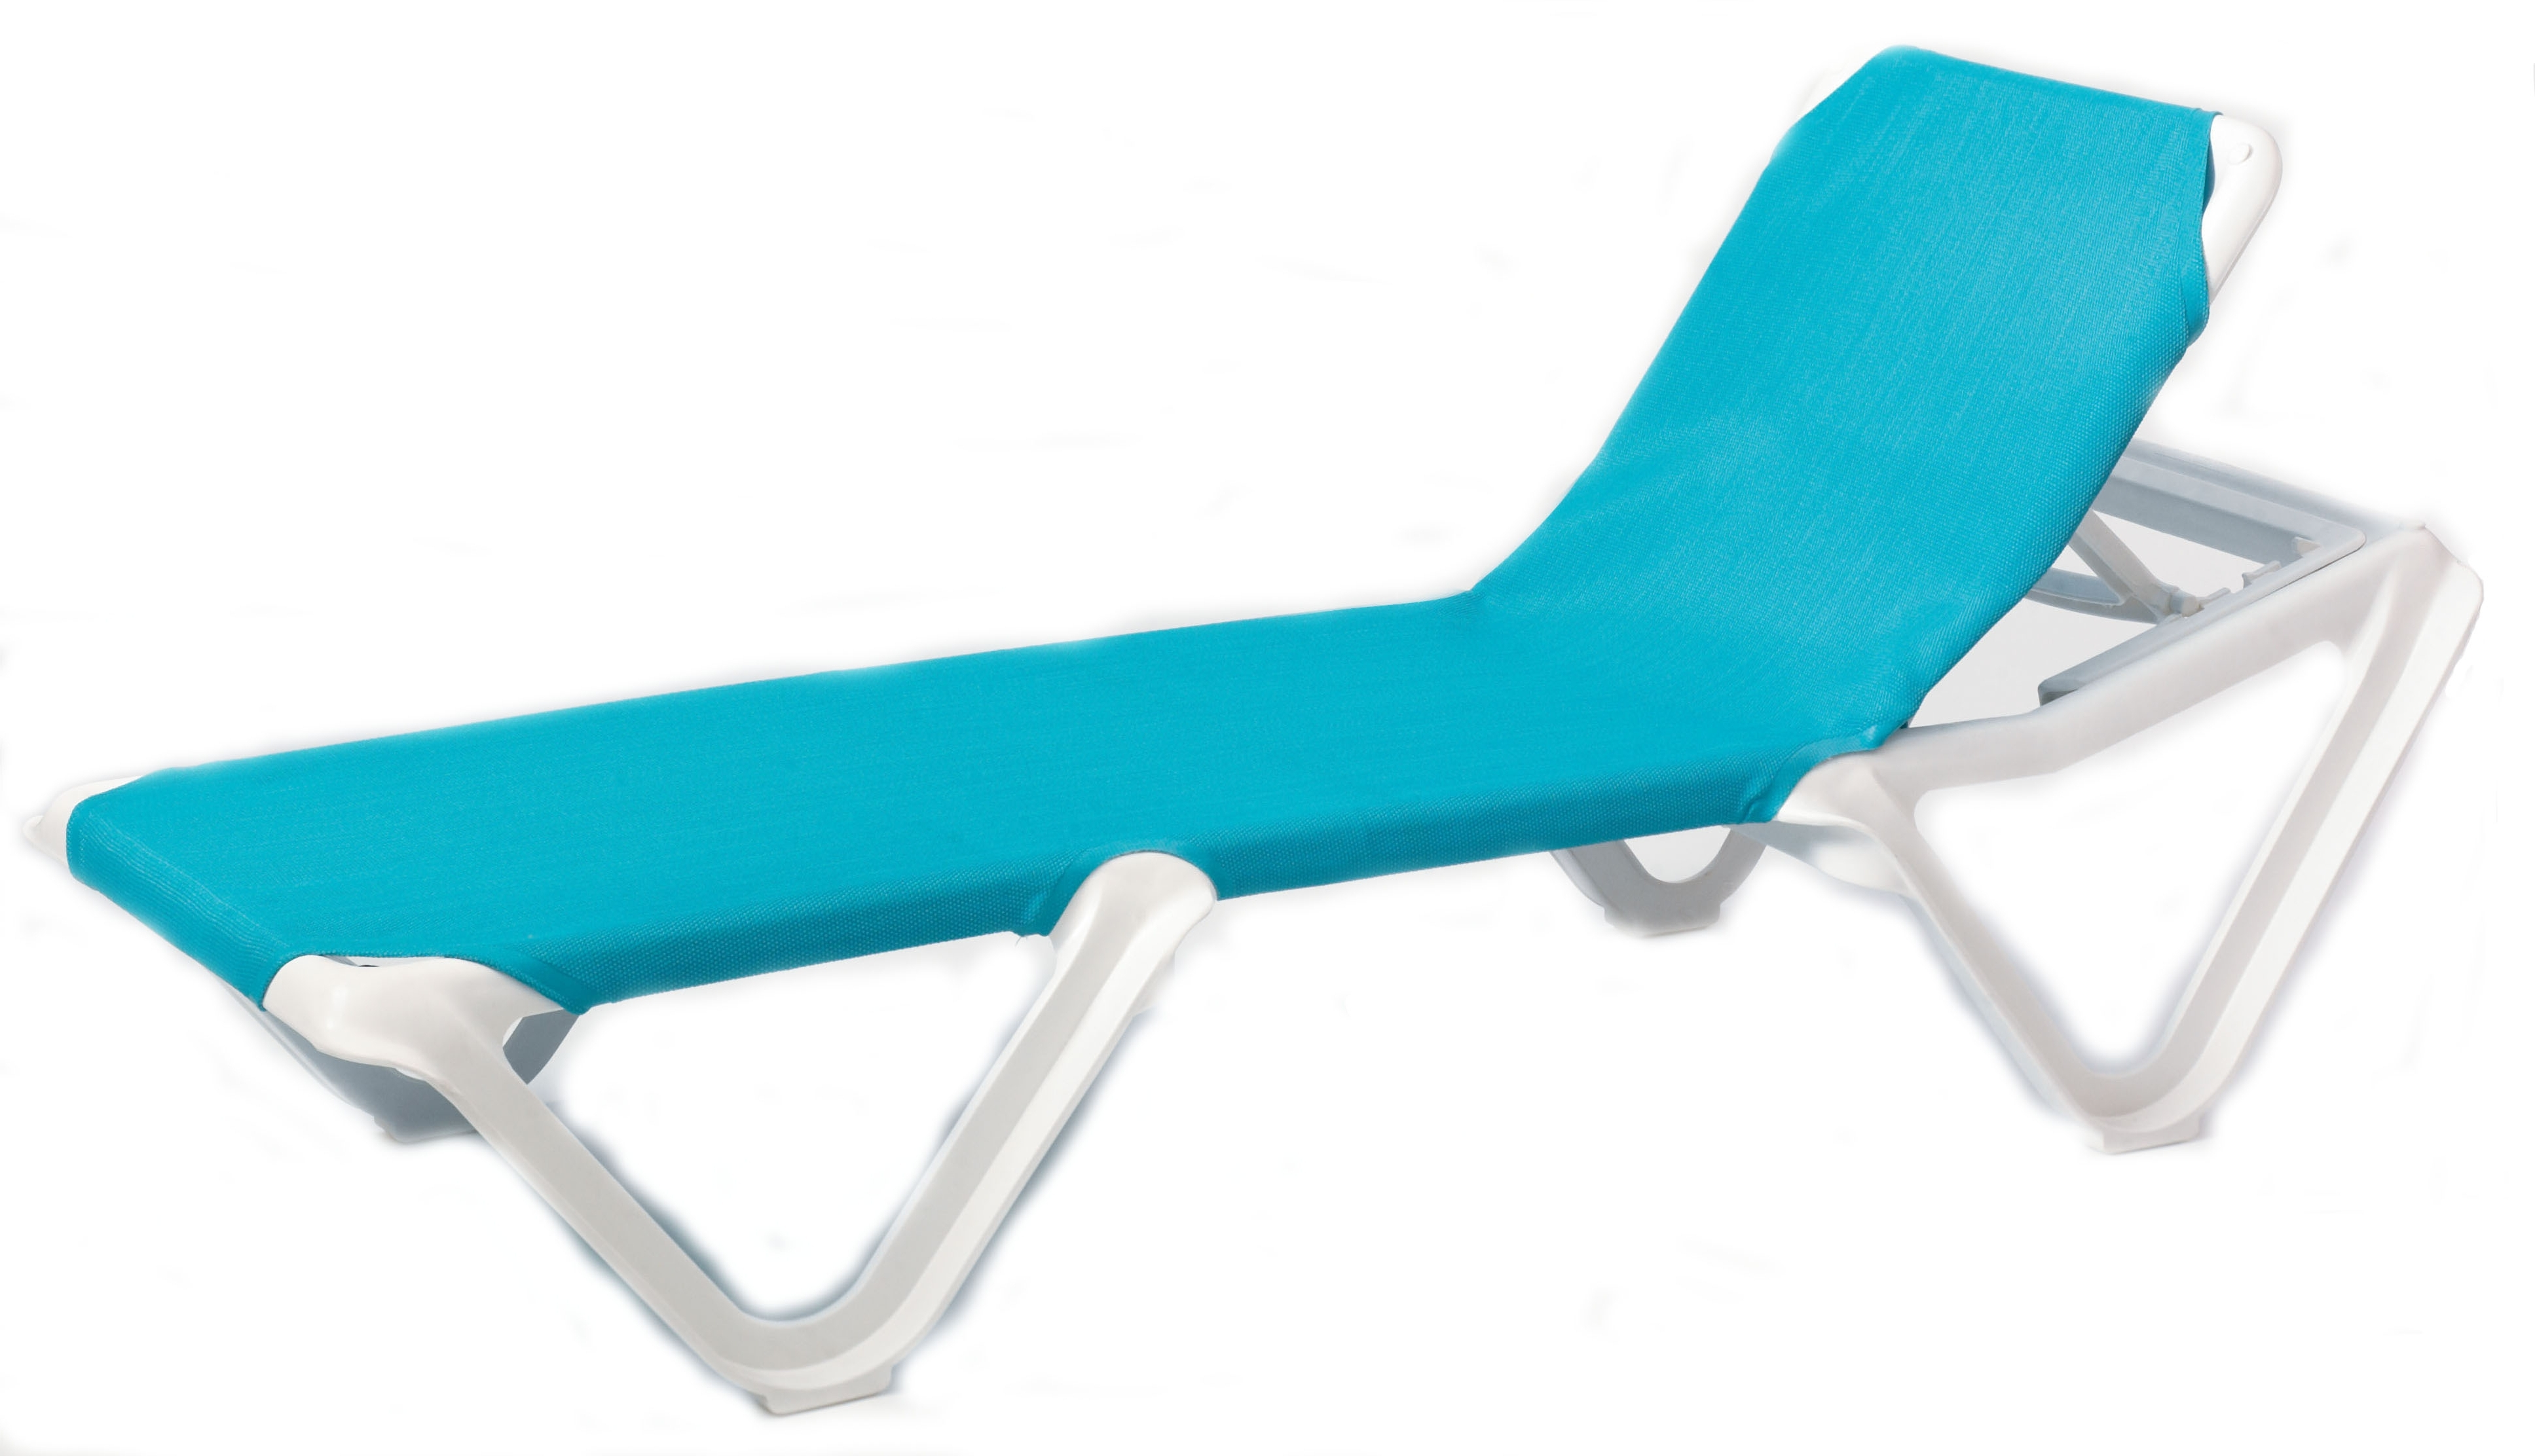 Green Resin Chaise Lounge Chairs Inside Popular Green Plastic Lounge Chairs • Lounge Chairs Ideas (View 3 of 15)